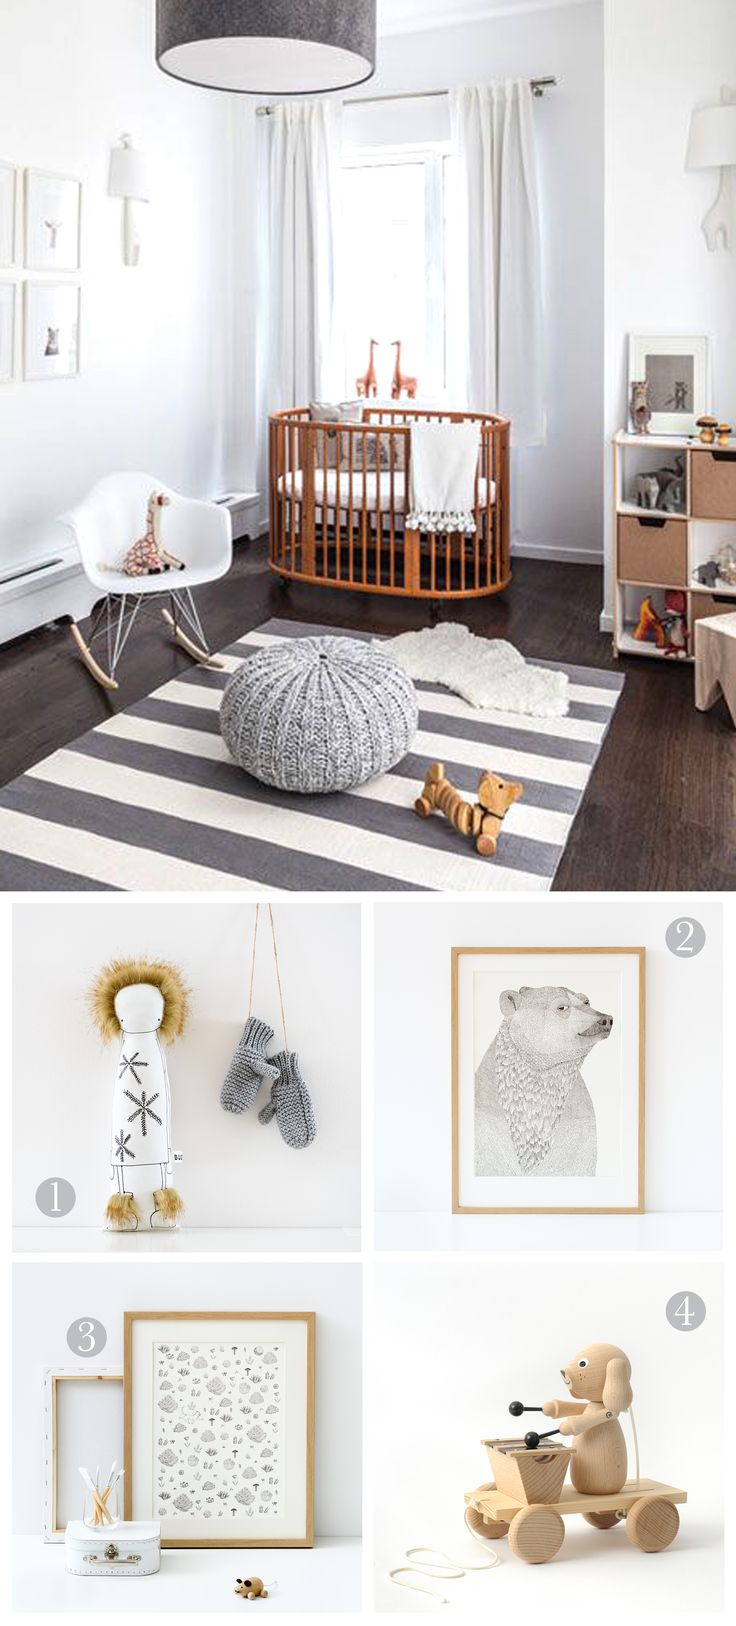 We love this adorable nursery, with its calming grey/white colour schemes andaccents of natural wood. We think our prints and wooden toys would fit perfectly i